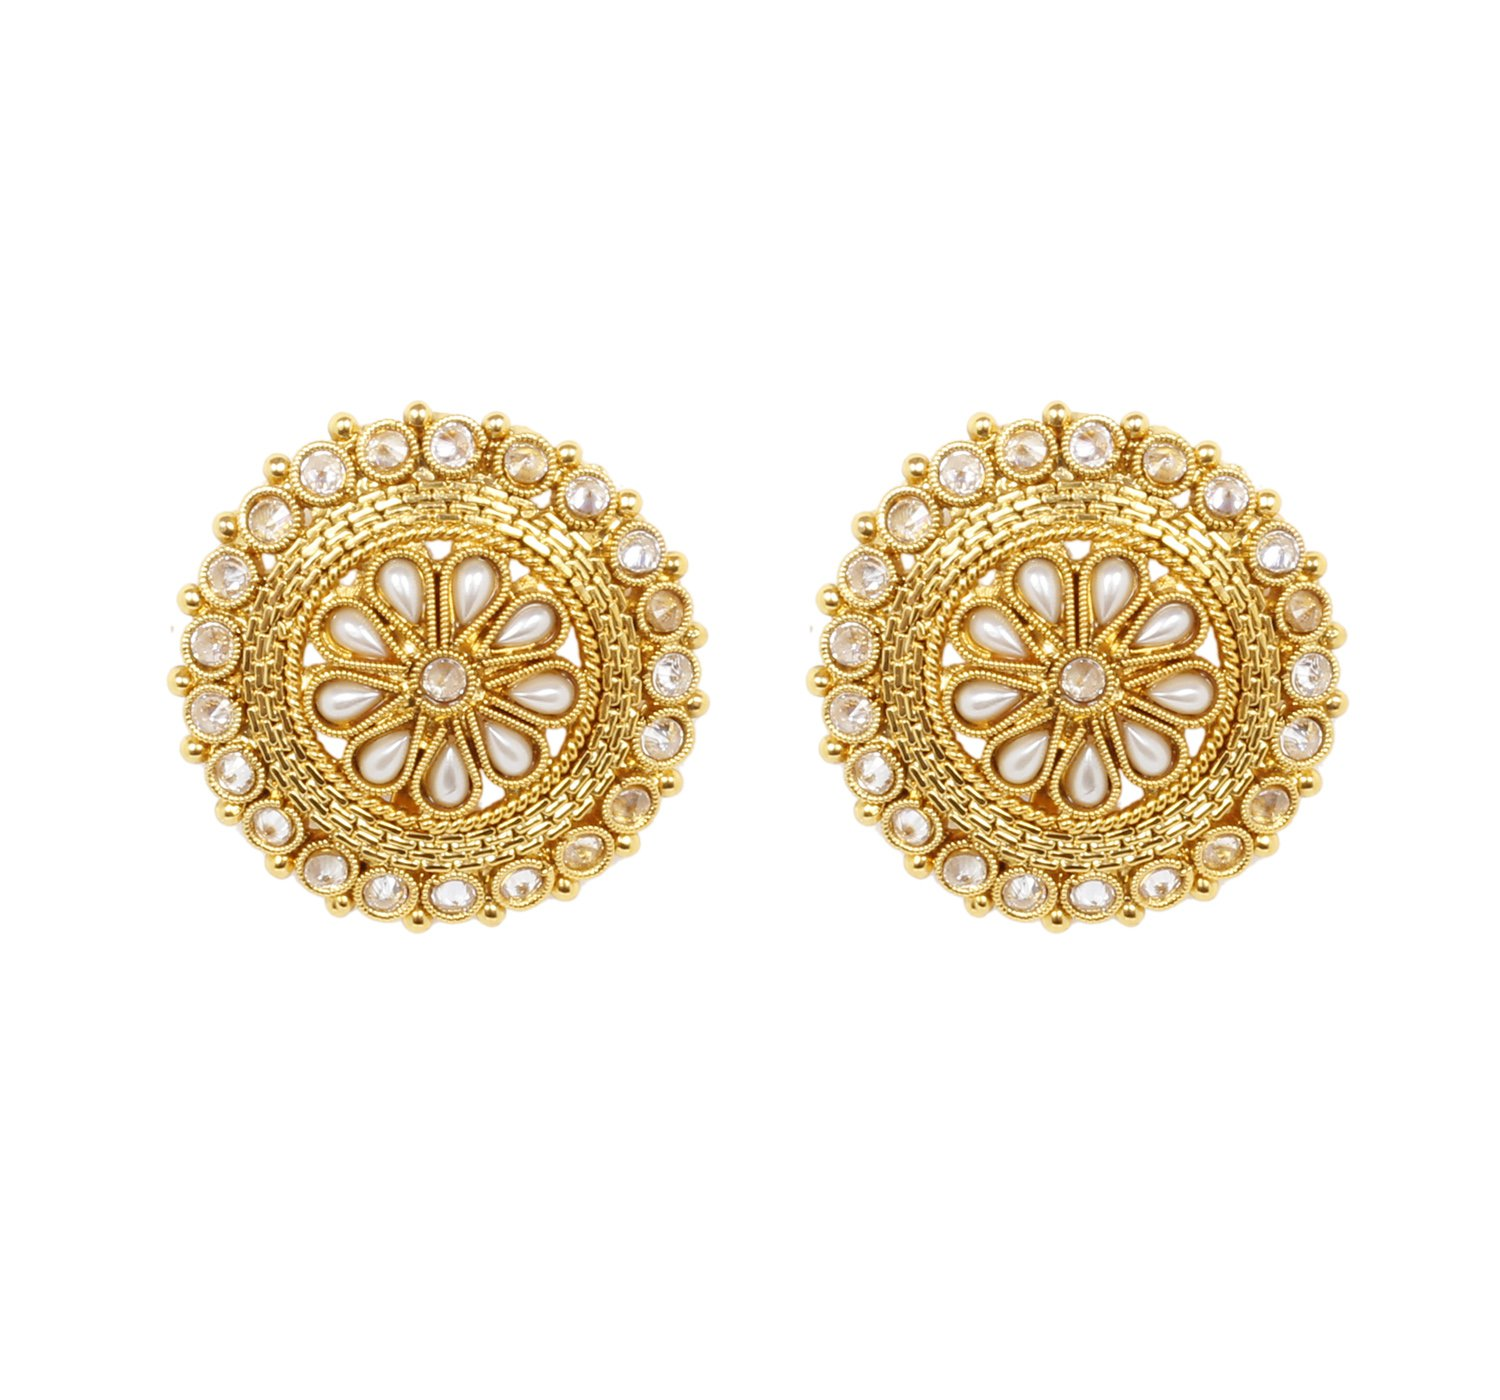 Ratna Indian Ethnic Traditional Bollywood Antique Gold Plated Pearl Polki Earrings Stud Tops Partywear Jewelry